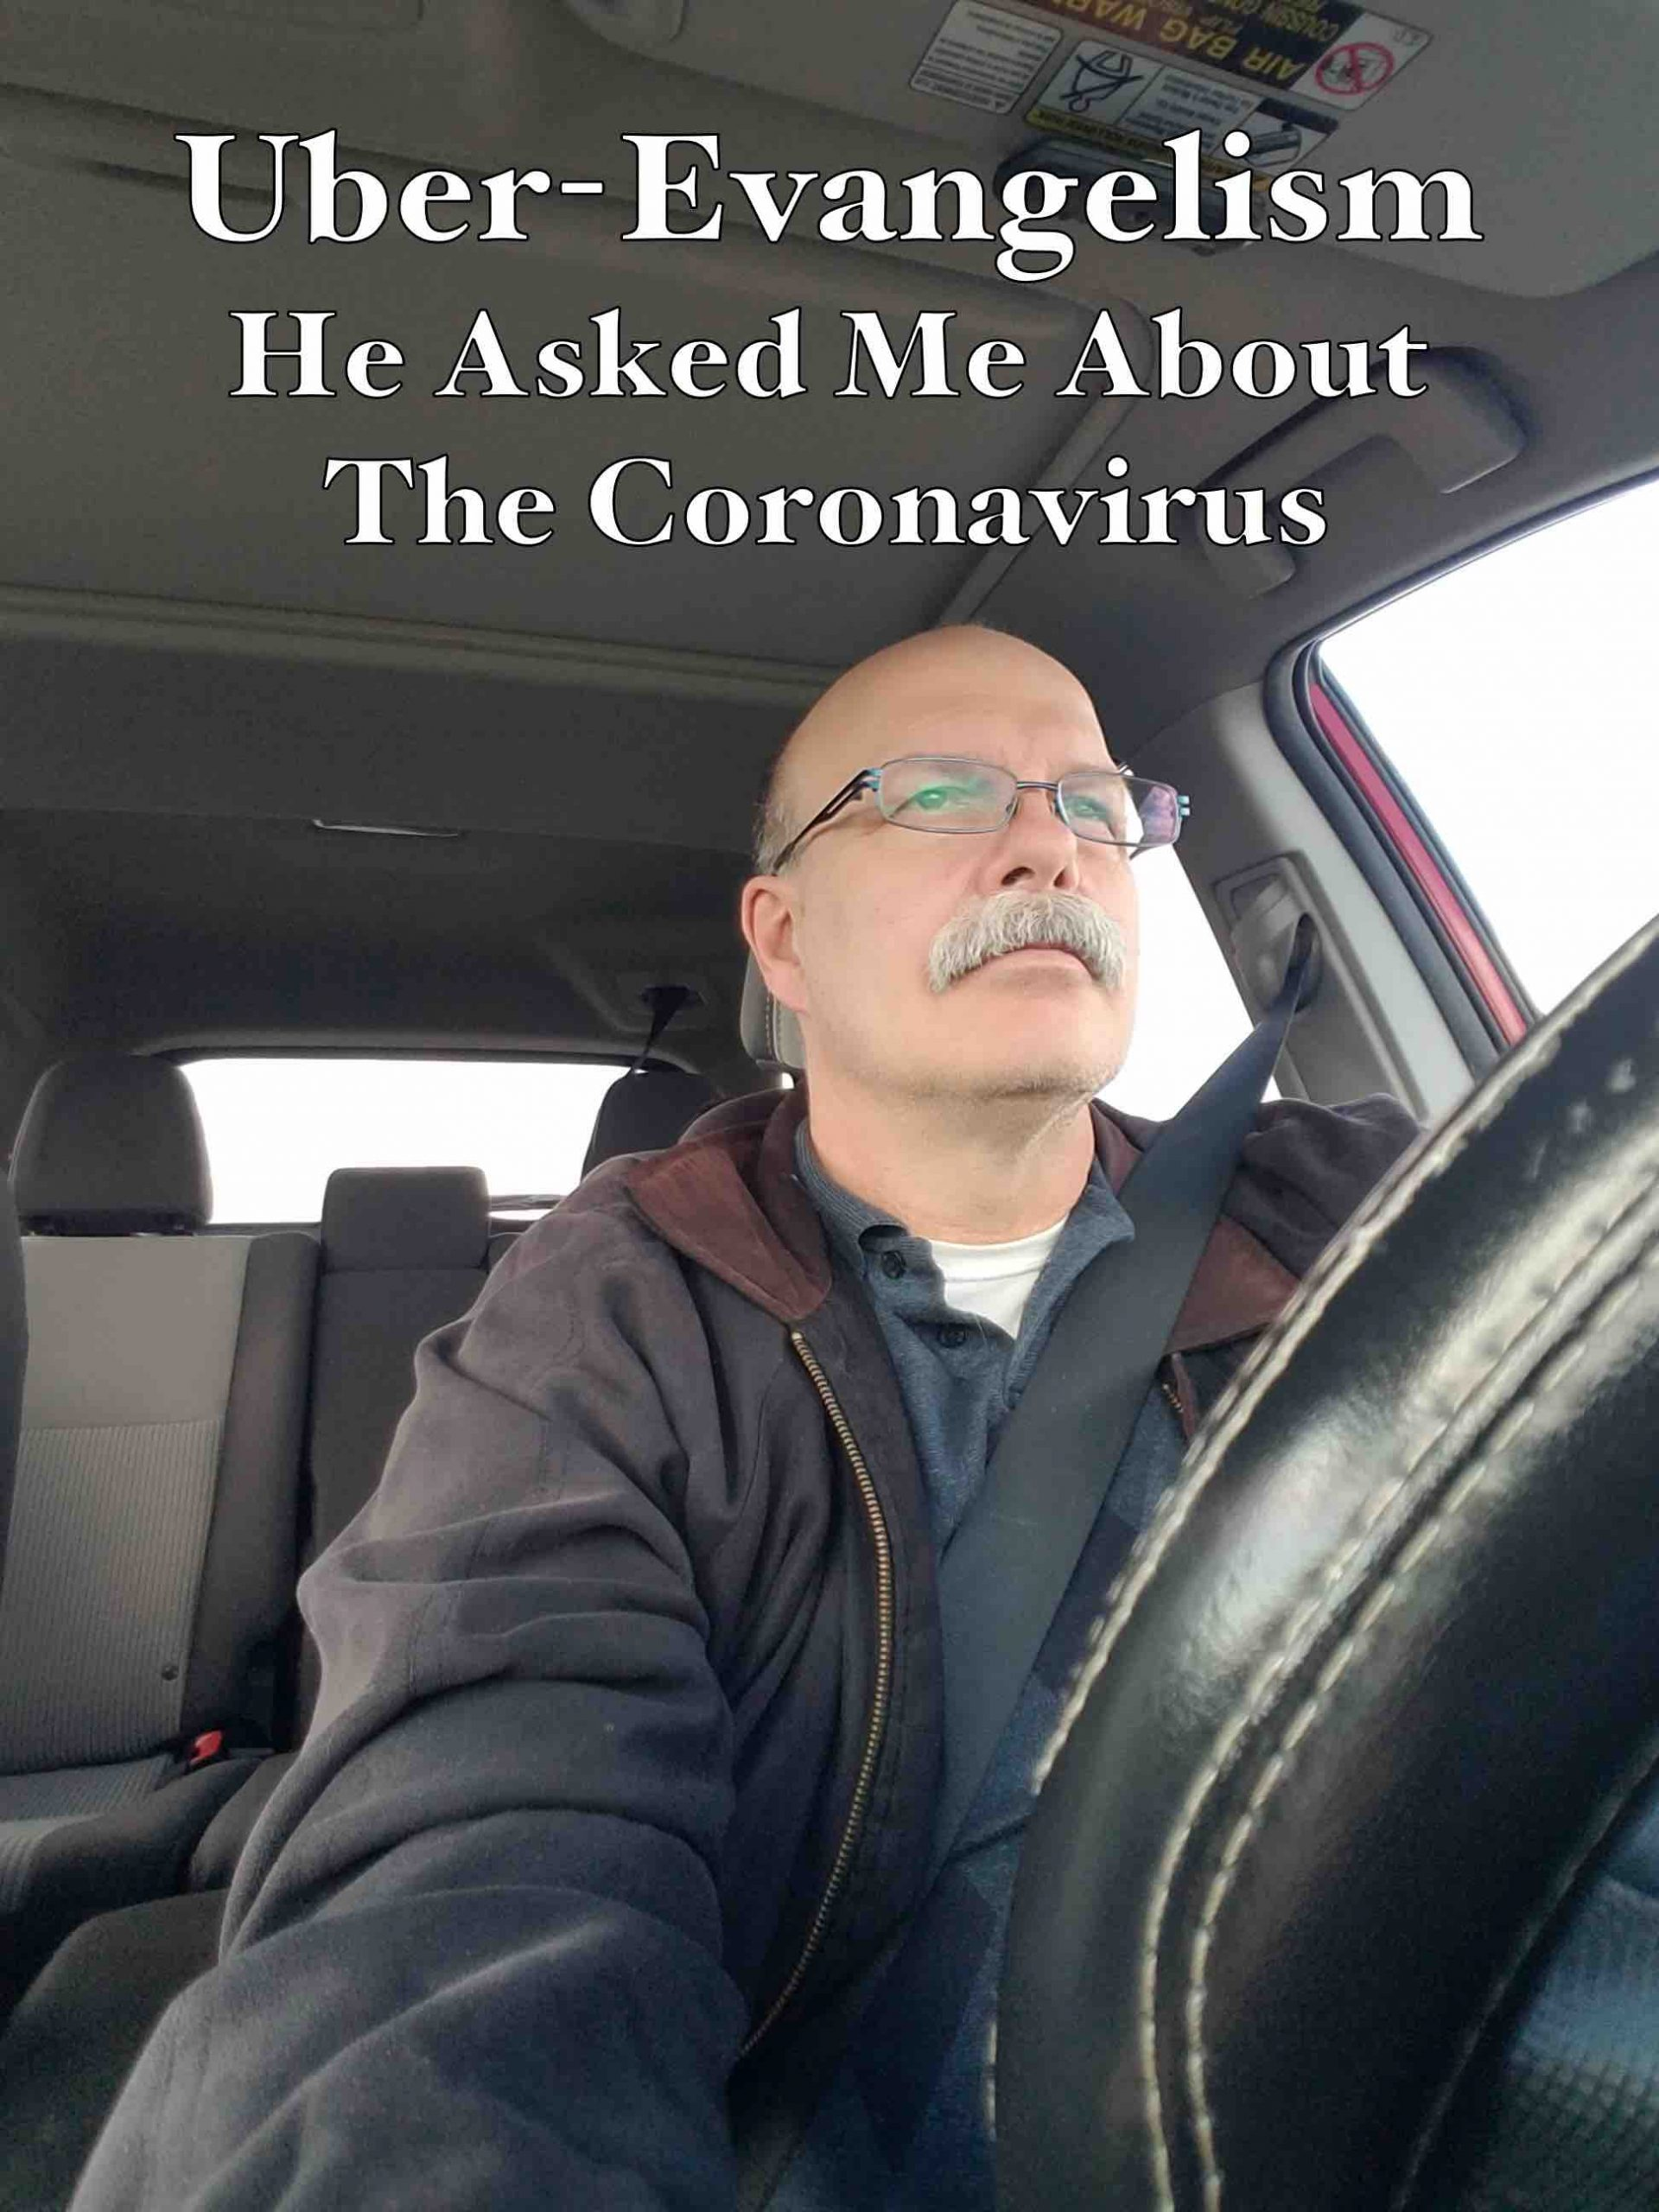 Uber-Evangelism: He Asked Me About The Coronavirus